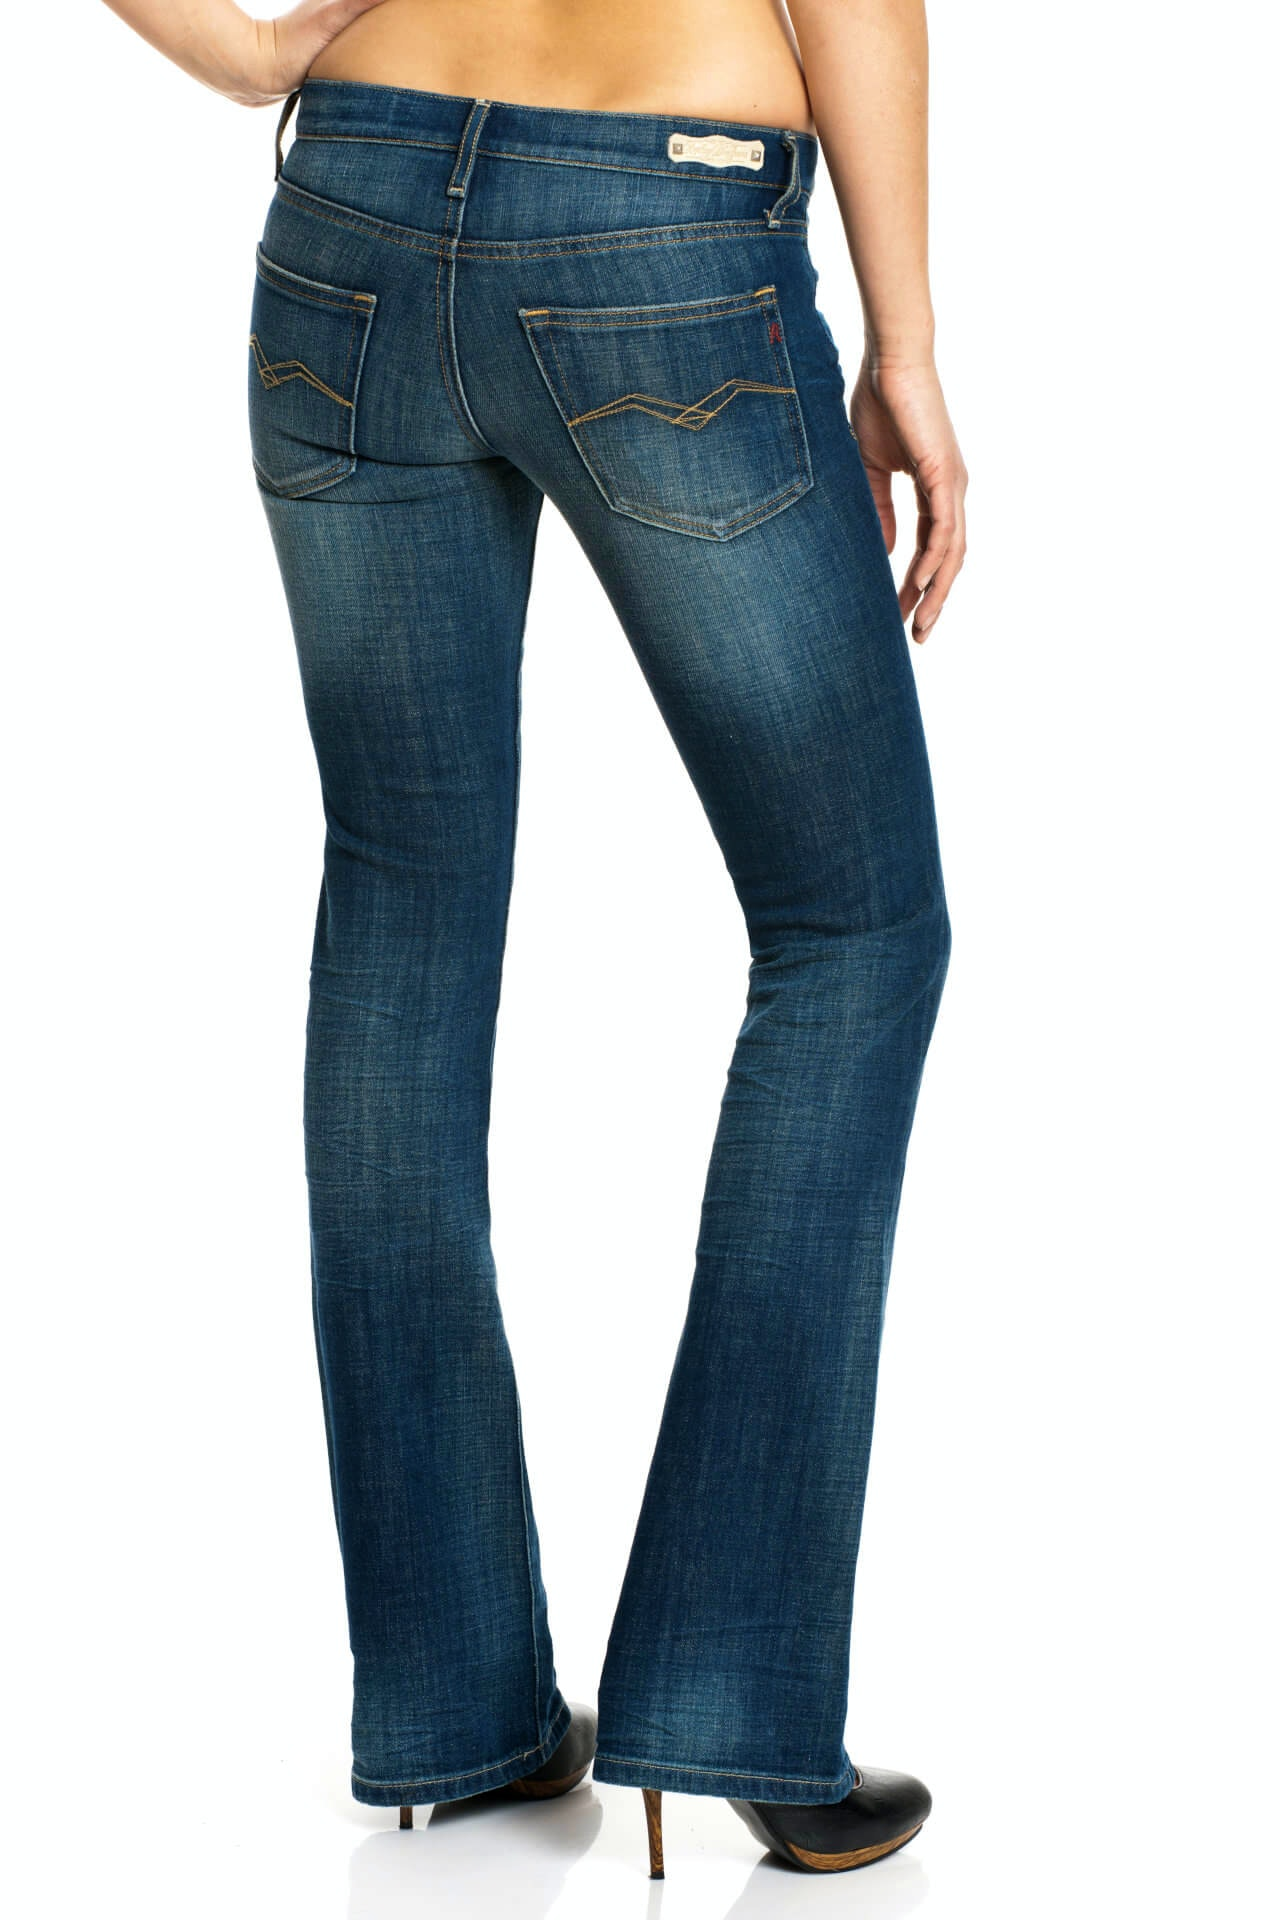 Replay Jeans Radell